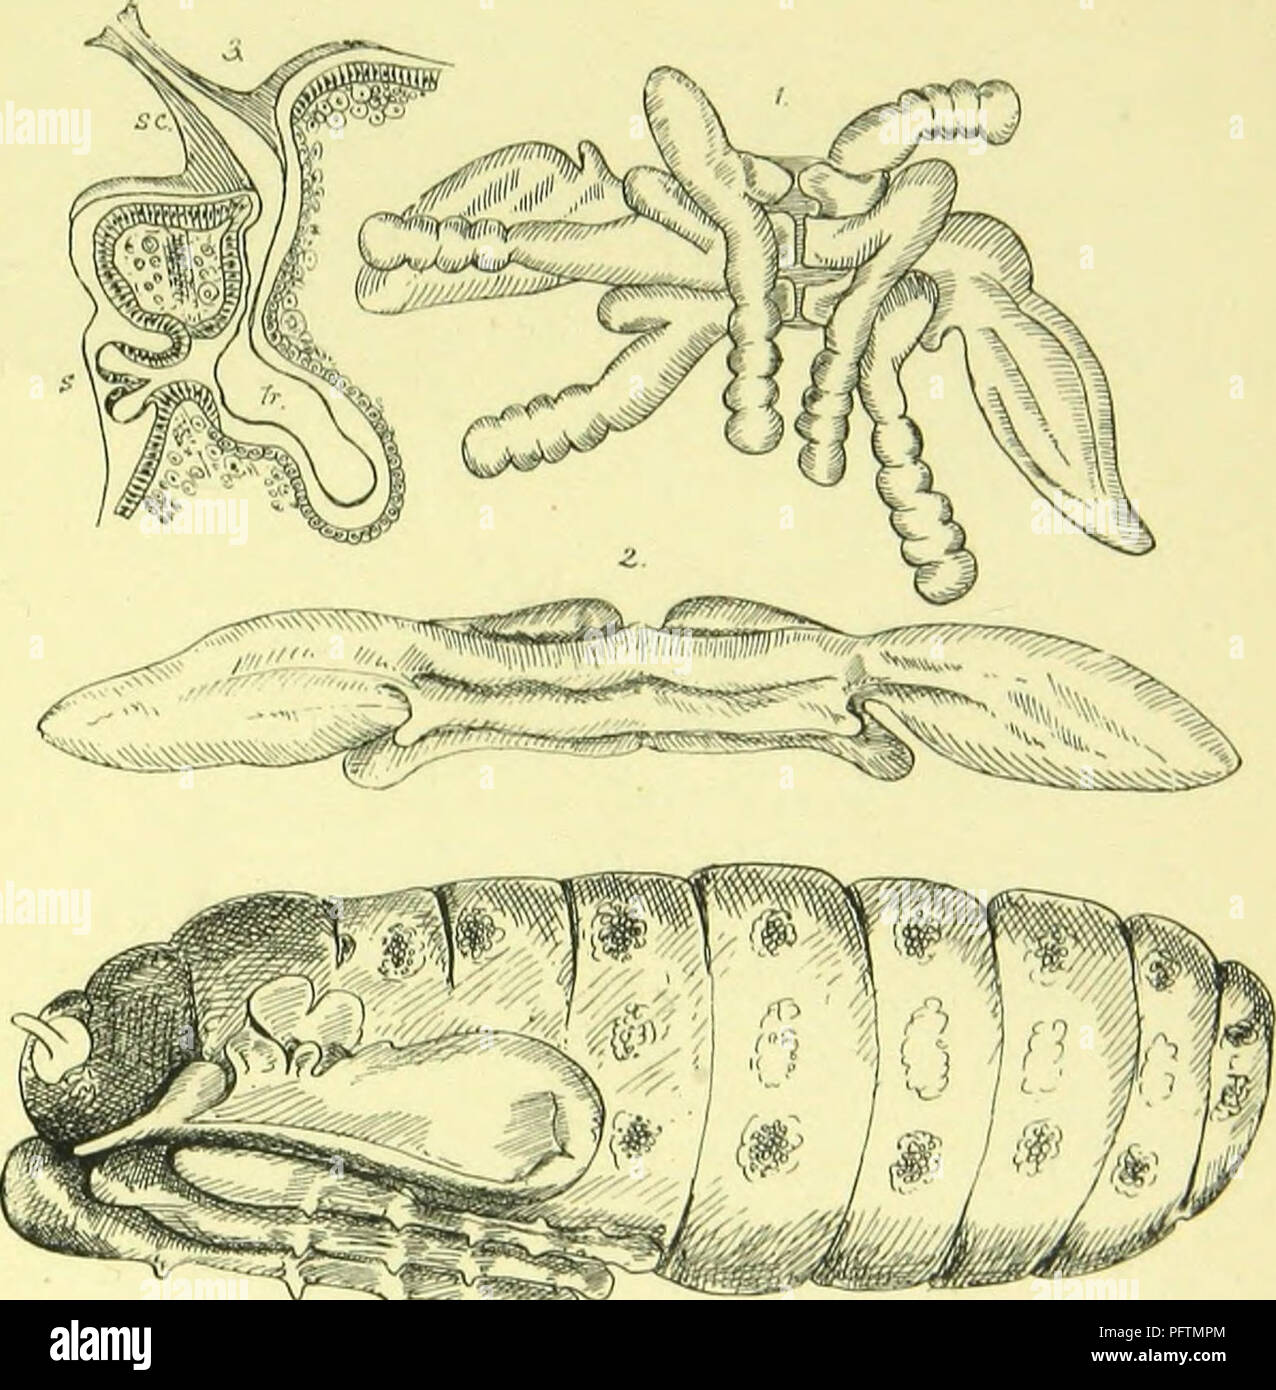 . The anatomy, physiology, morphology and development of the blow-fly (Calliphora erythrocephala.) A study in the comparative anatomy and morphology of insects; with plates and illustrations executed directly from the drawings of the author;. Blowflies. PLATE XX-. Please note that these images are extracted from scanned page images that may have been digitally enhanced for readability - coloration and appearance of these illustrations may not perfectly resemble the original work.. Lowne, Benjamin Thompson, 1839-. London, Pub. for the author by R. H. Porter - Stock Image